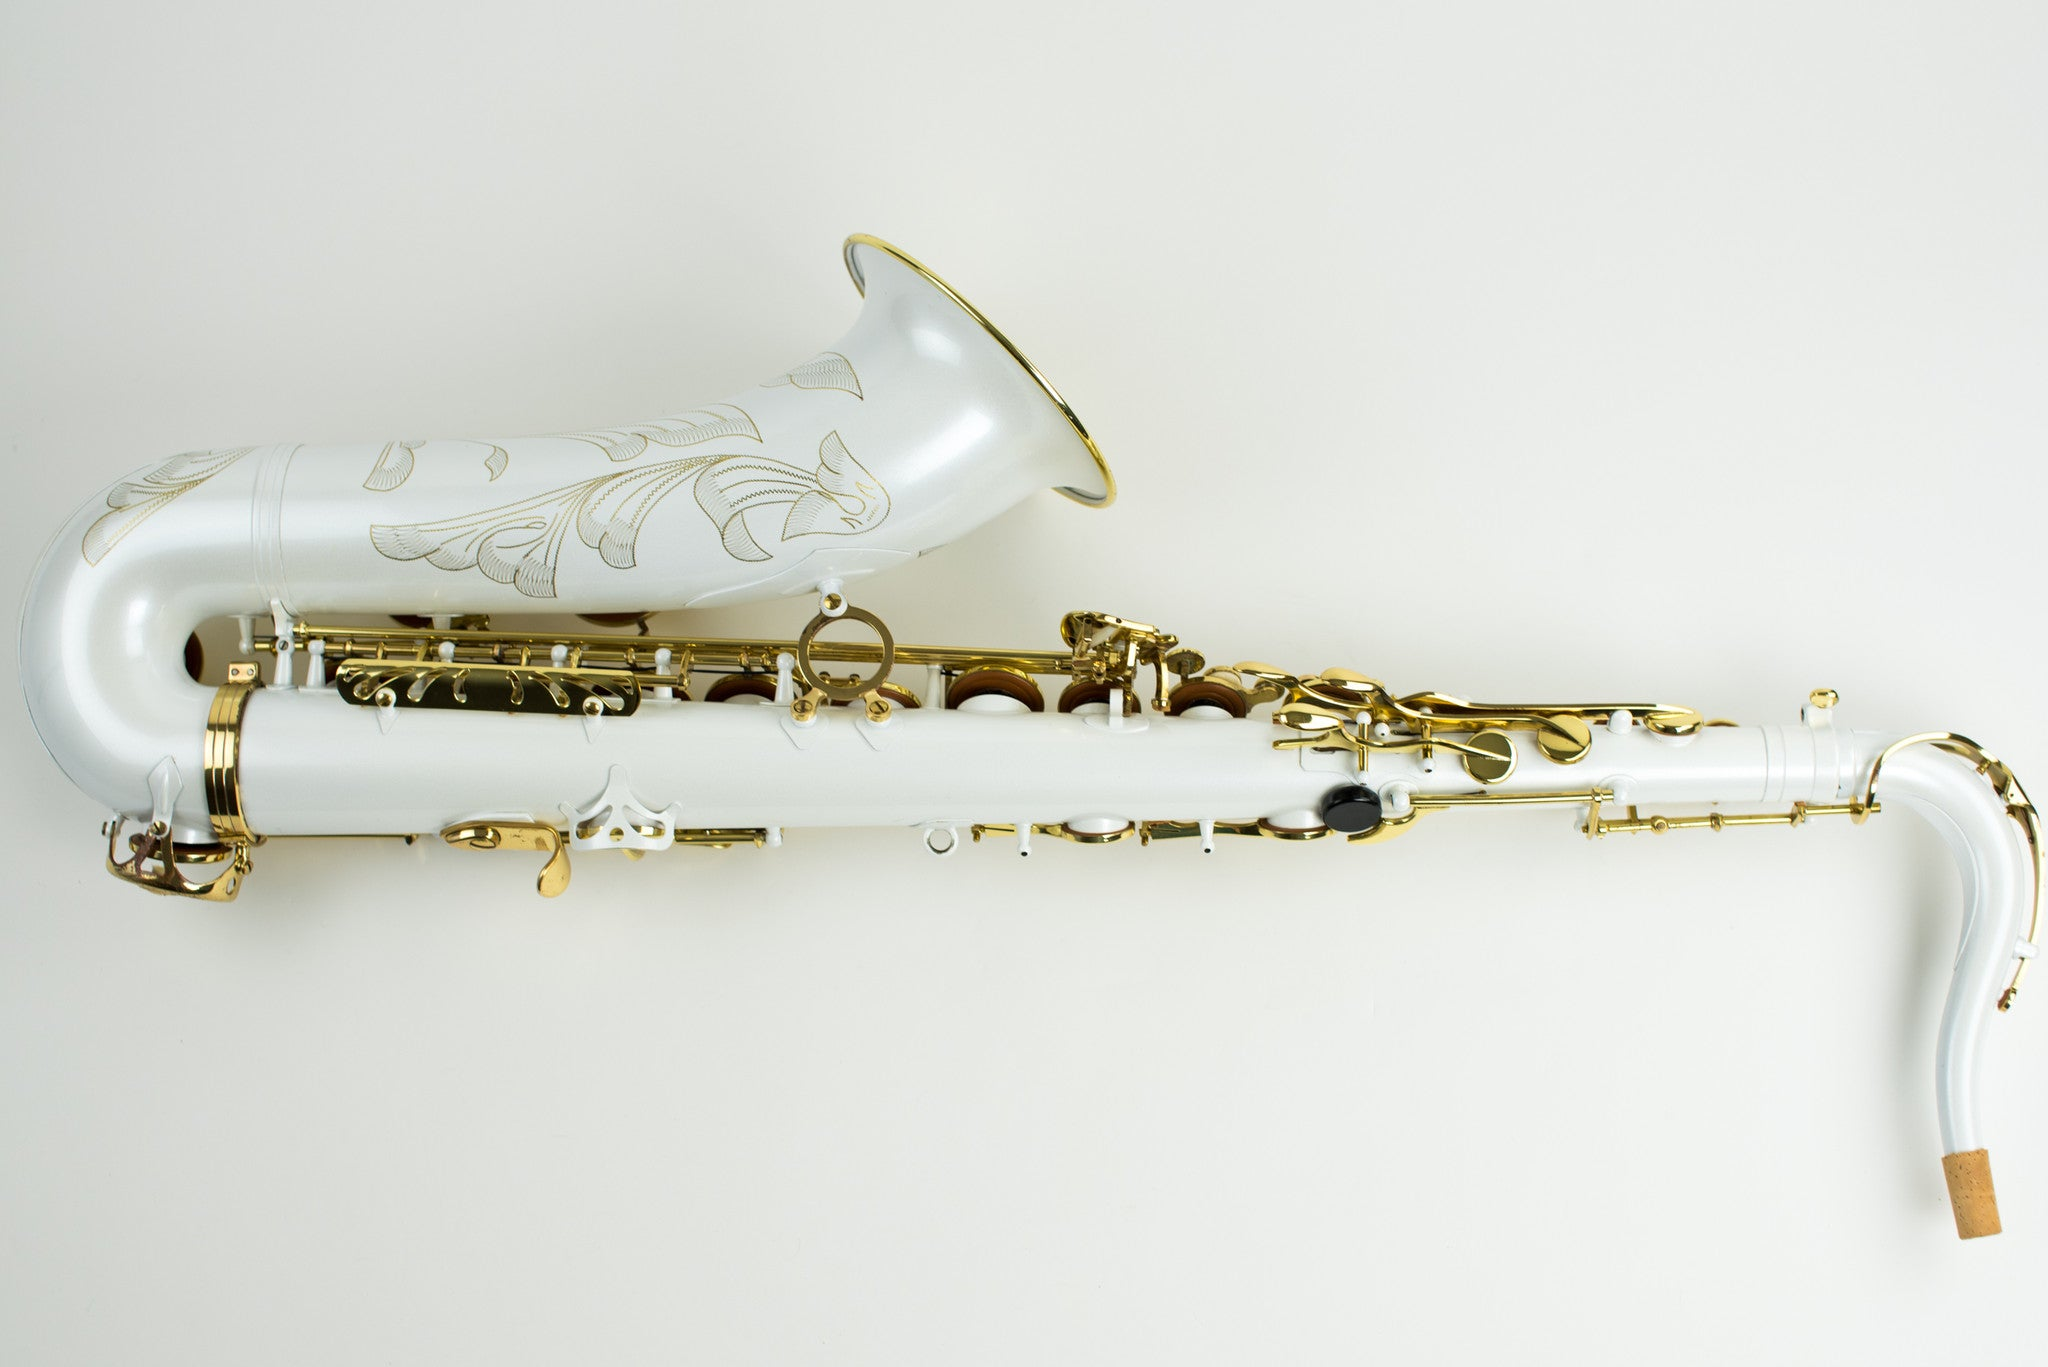 Selmer Series III Tenor Saxophone with Rare White Finish